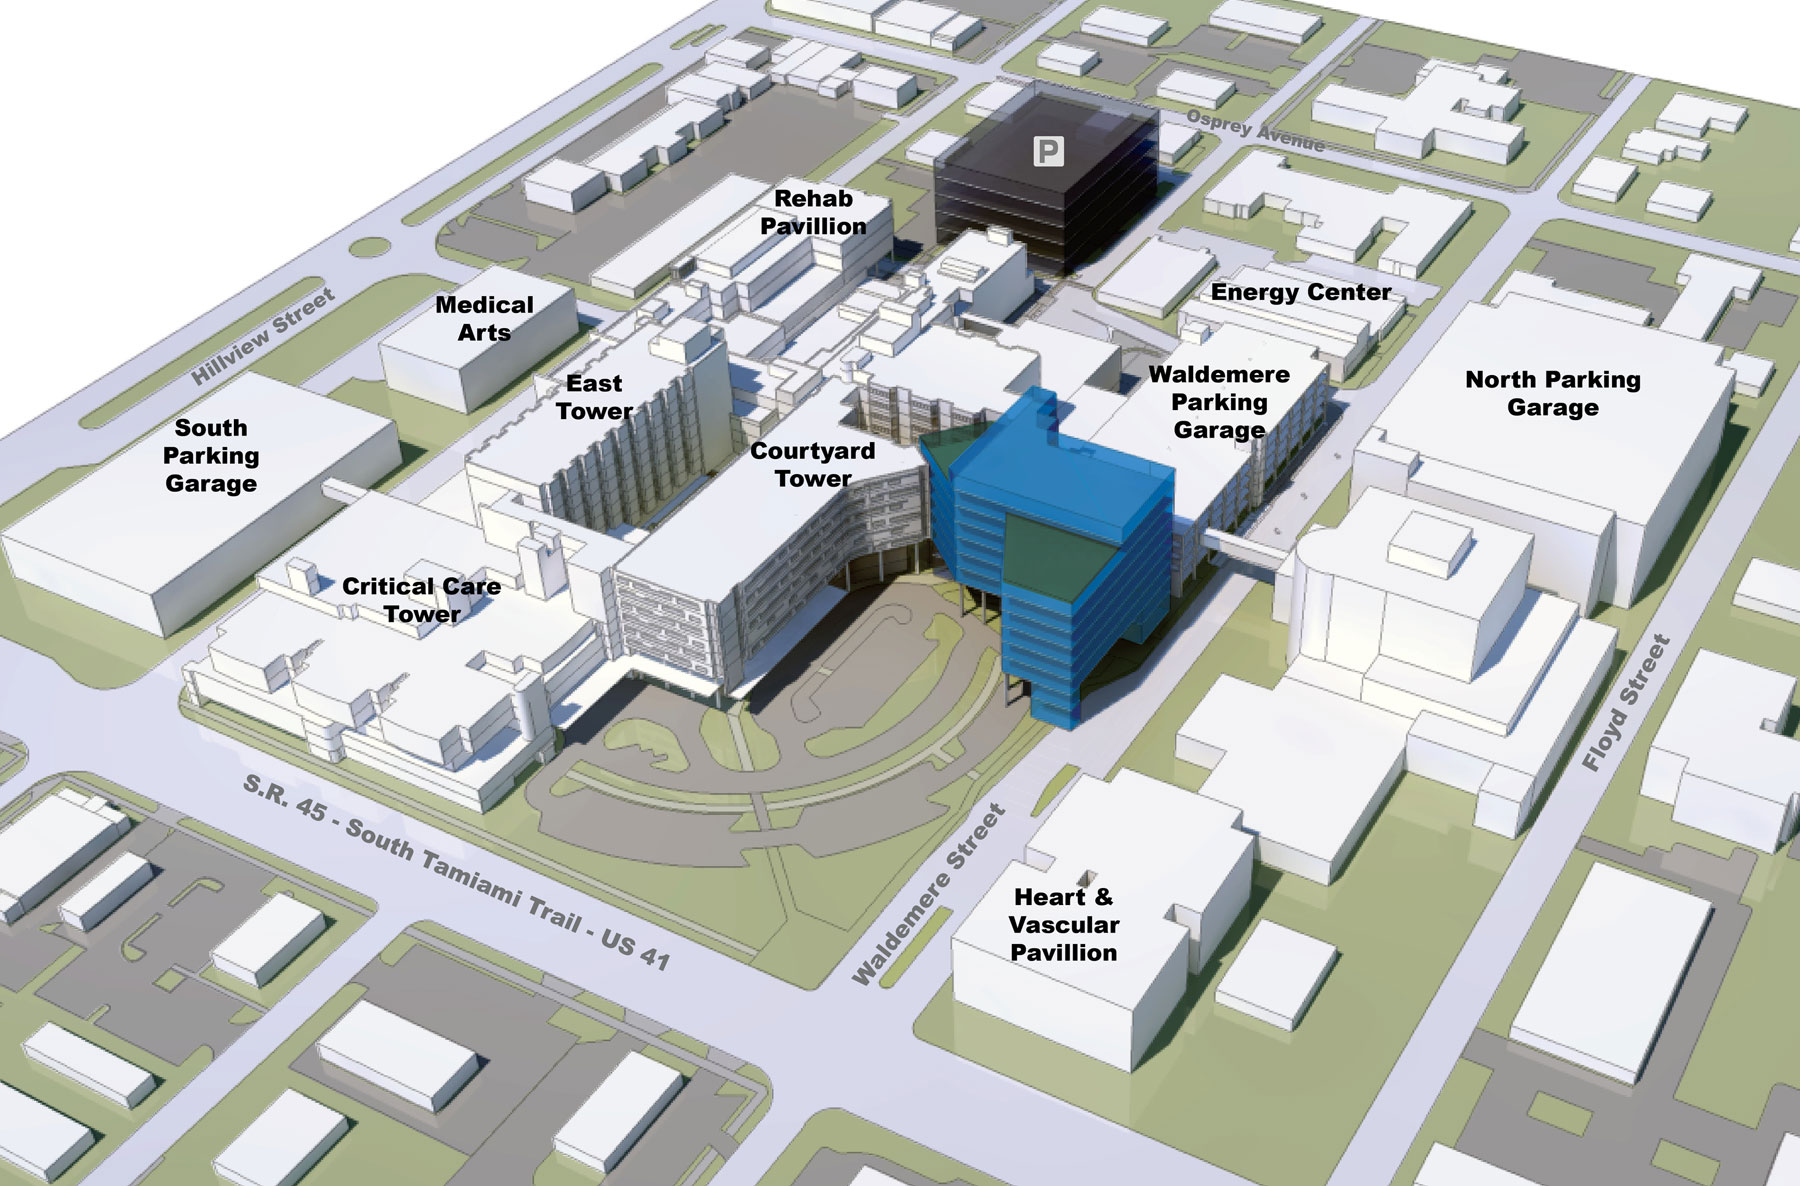 Sarasota Memorial Hospital - Strategic Planning and Site Selection Master Plan